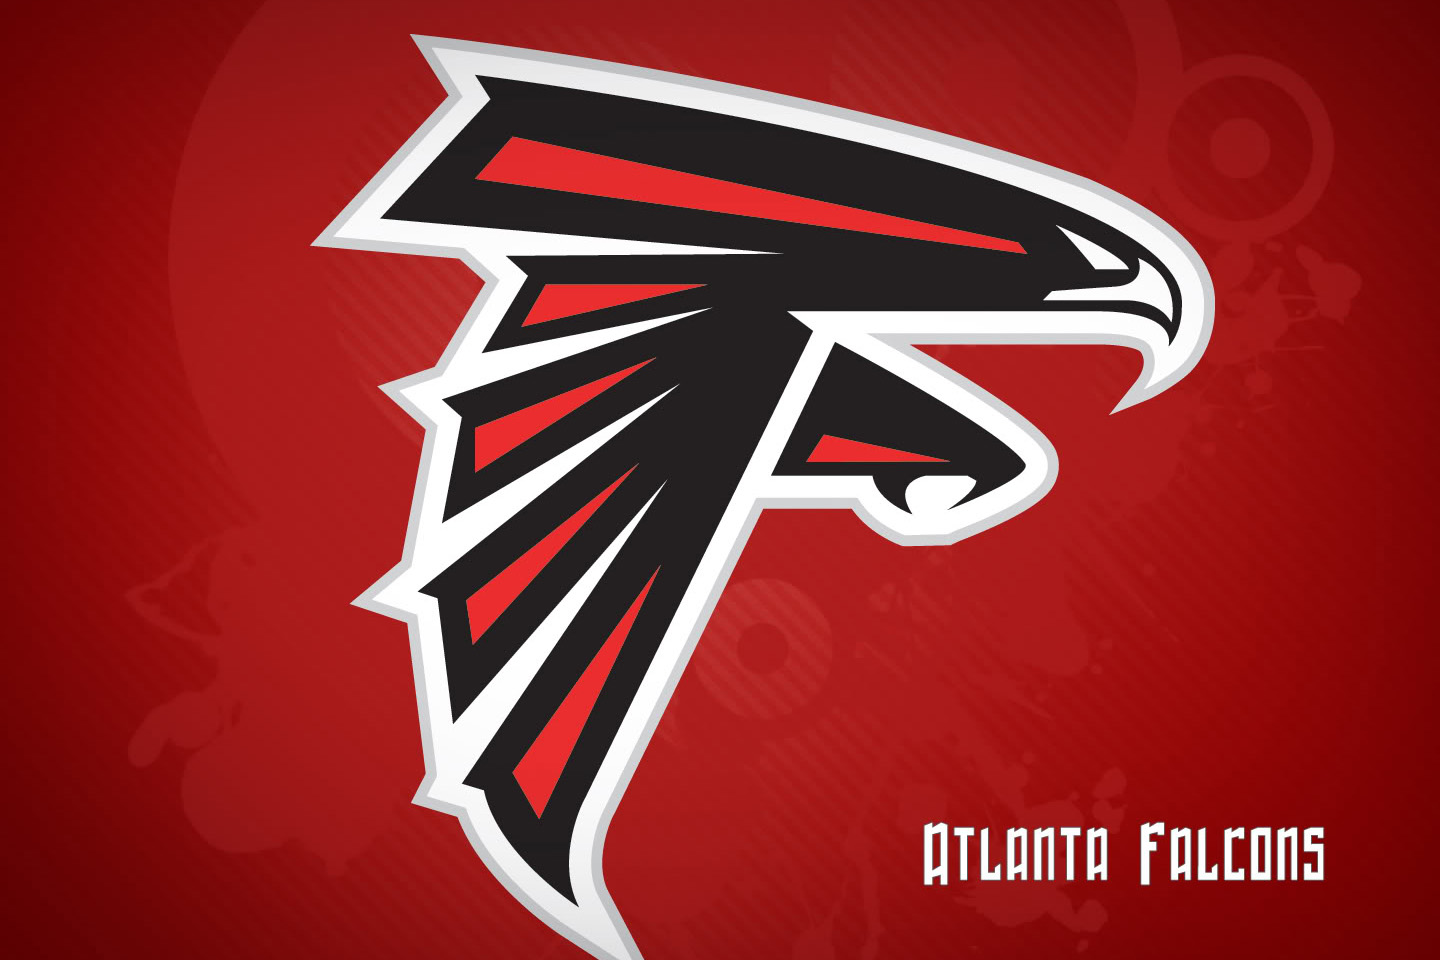 Atlanta Falcons Logo Photos Nfl Iphone Wallpapers: NFL Team Logos Wallpapers, NFC Teams (1440 X 960 Pixels